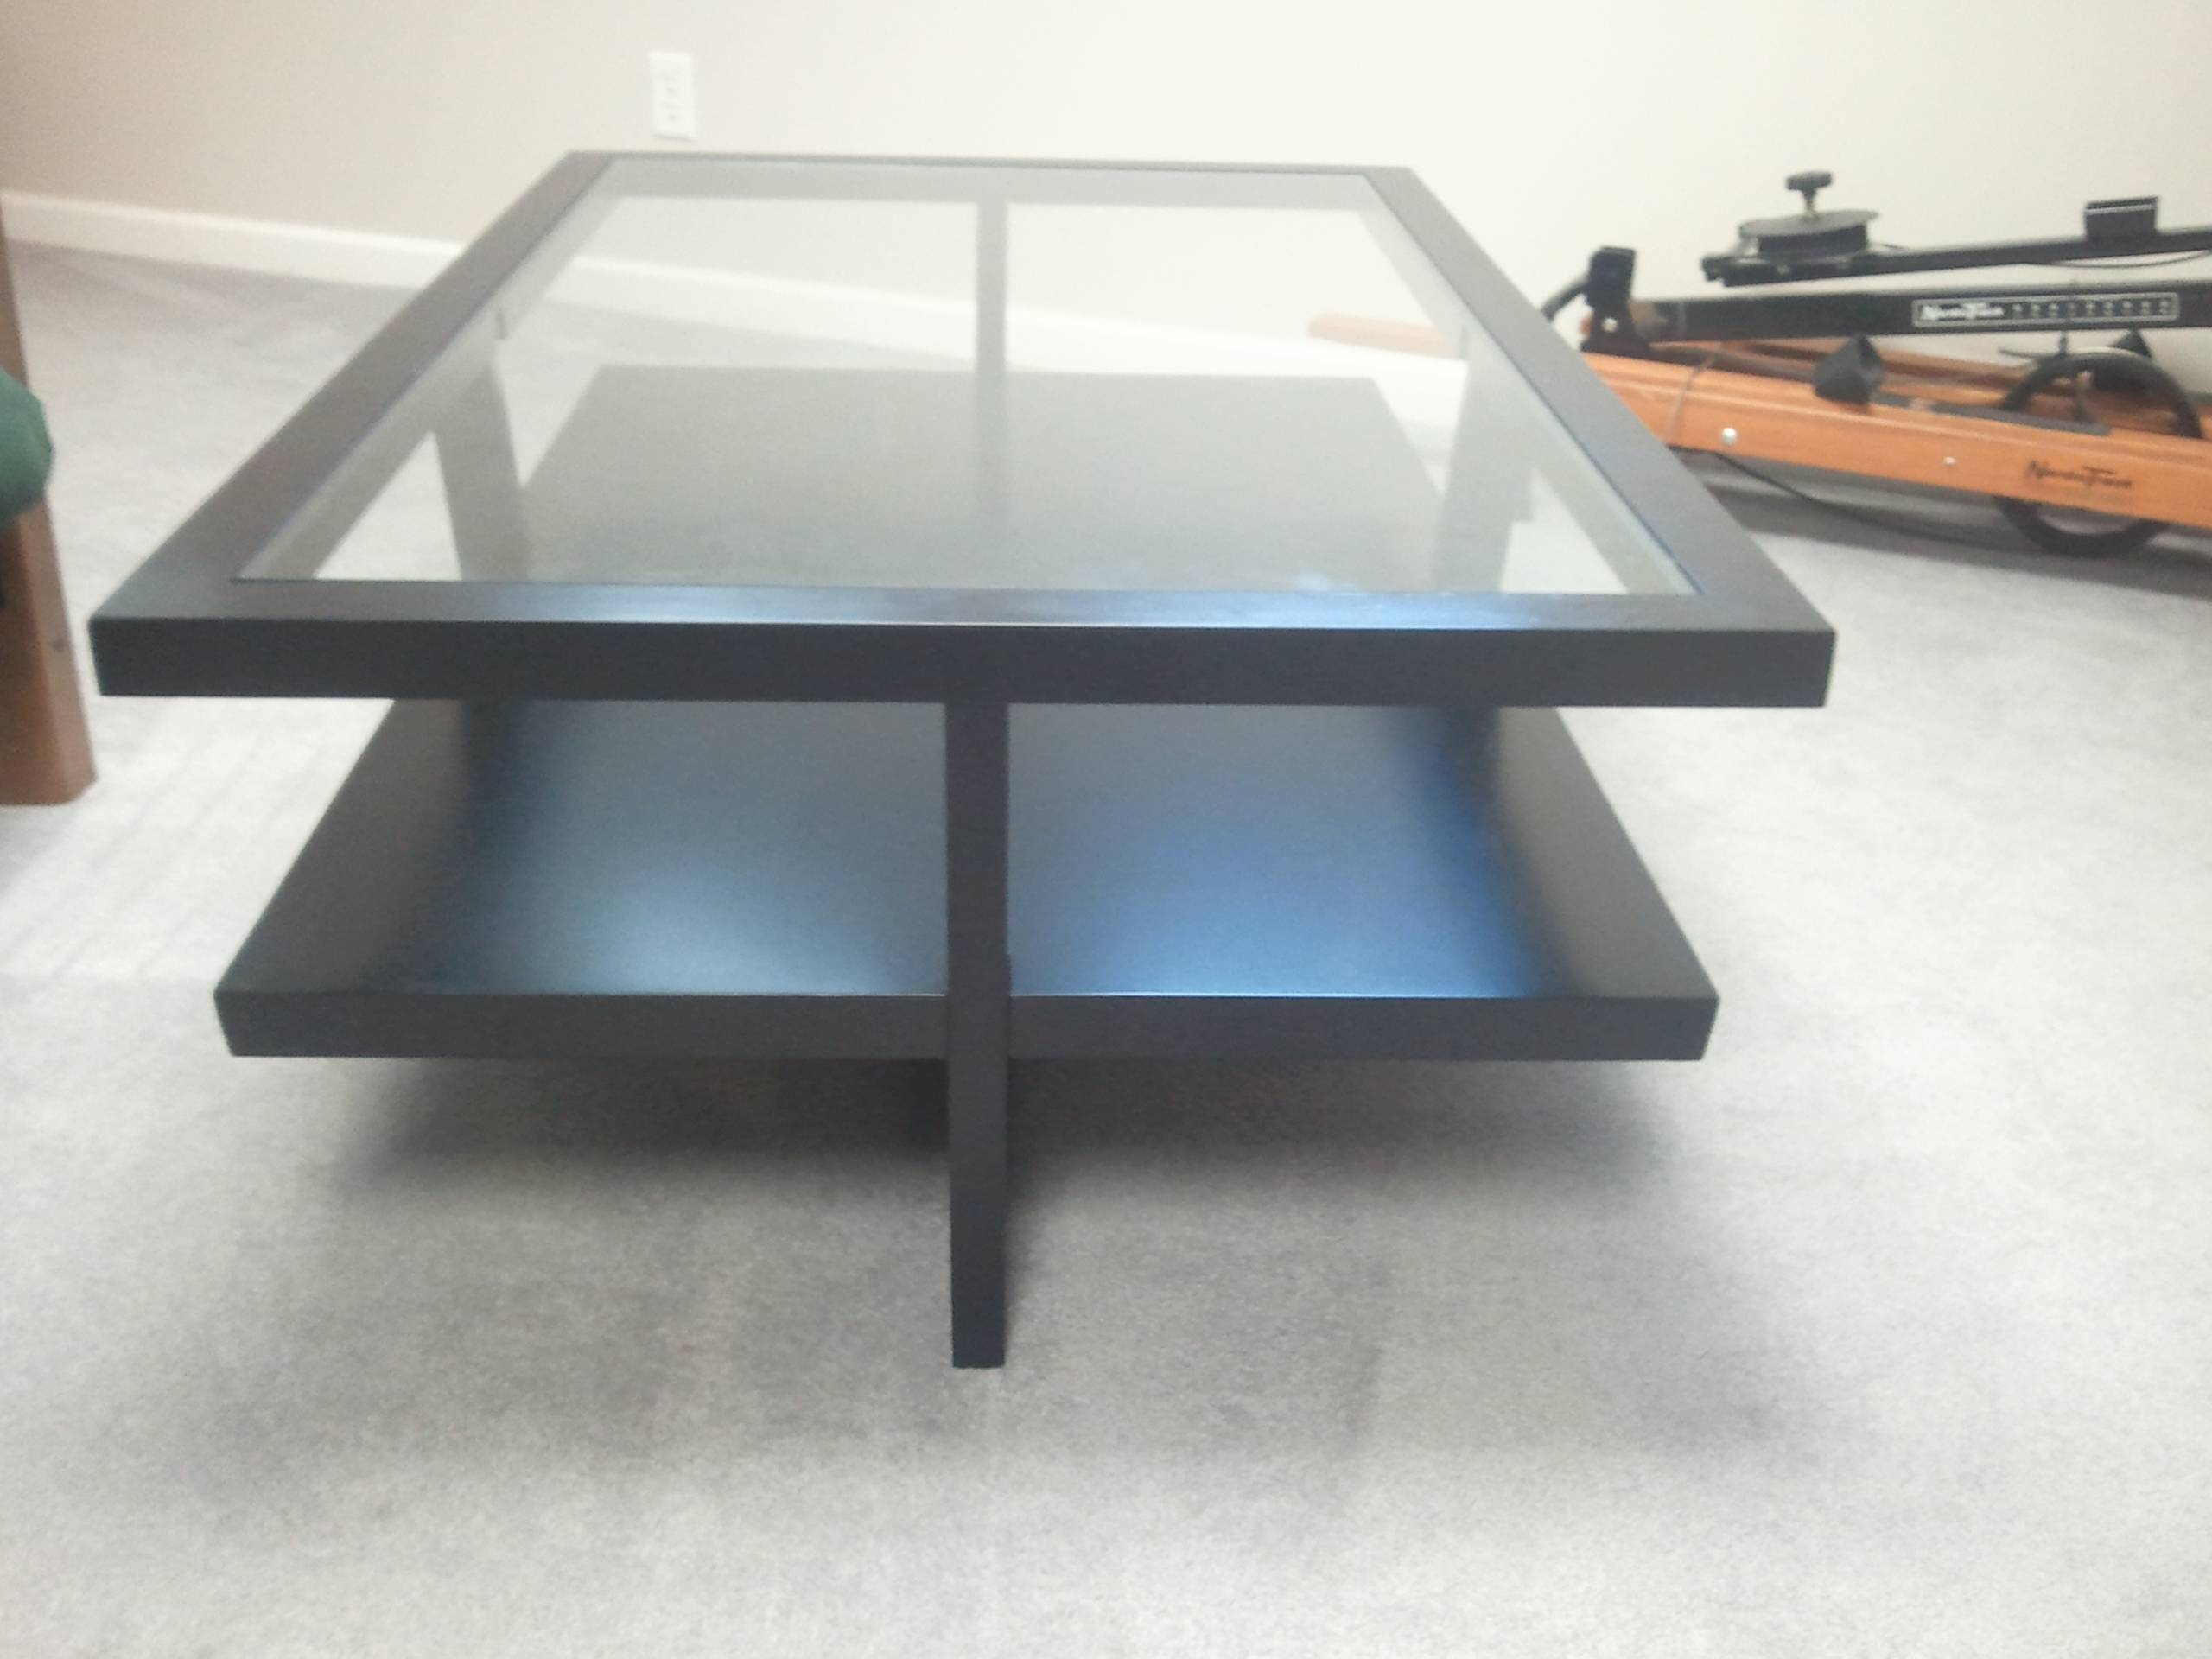 Coffee Table: Astonishing Large Glass Coffee Table Design Ideas inside Glass and Black Coffee Tables (Image 8 of 30)